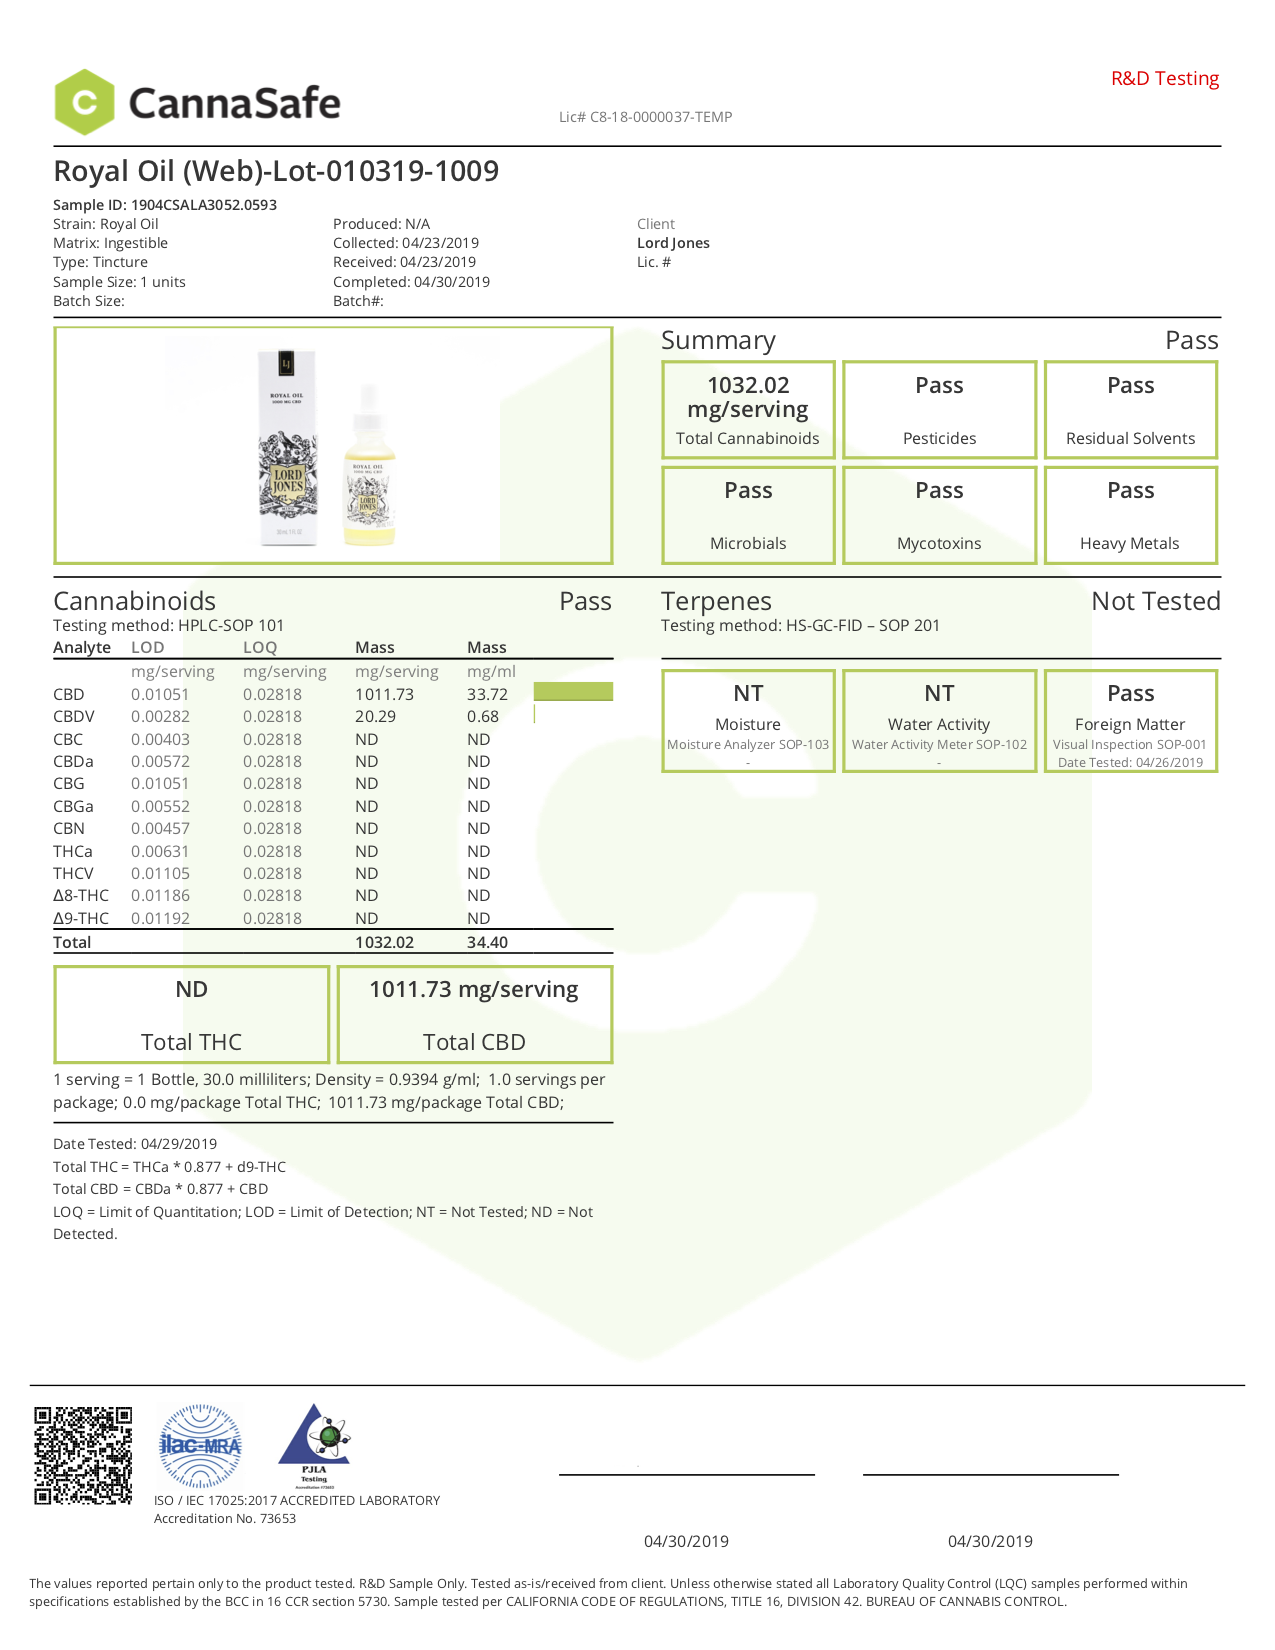 Royal Oil 1000mg Certificate of Analysis